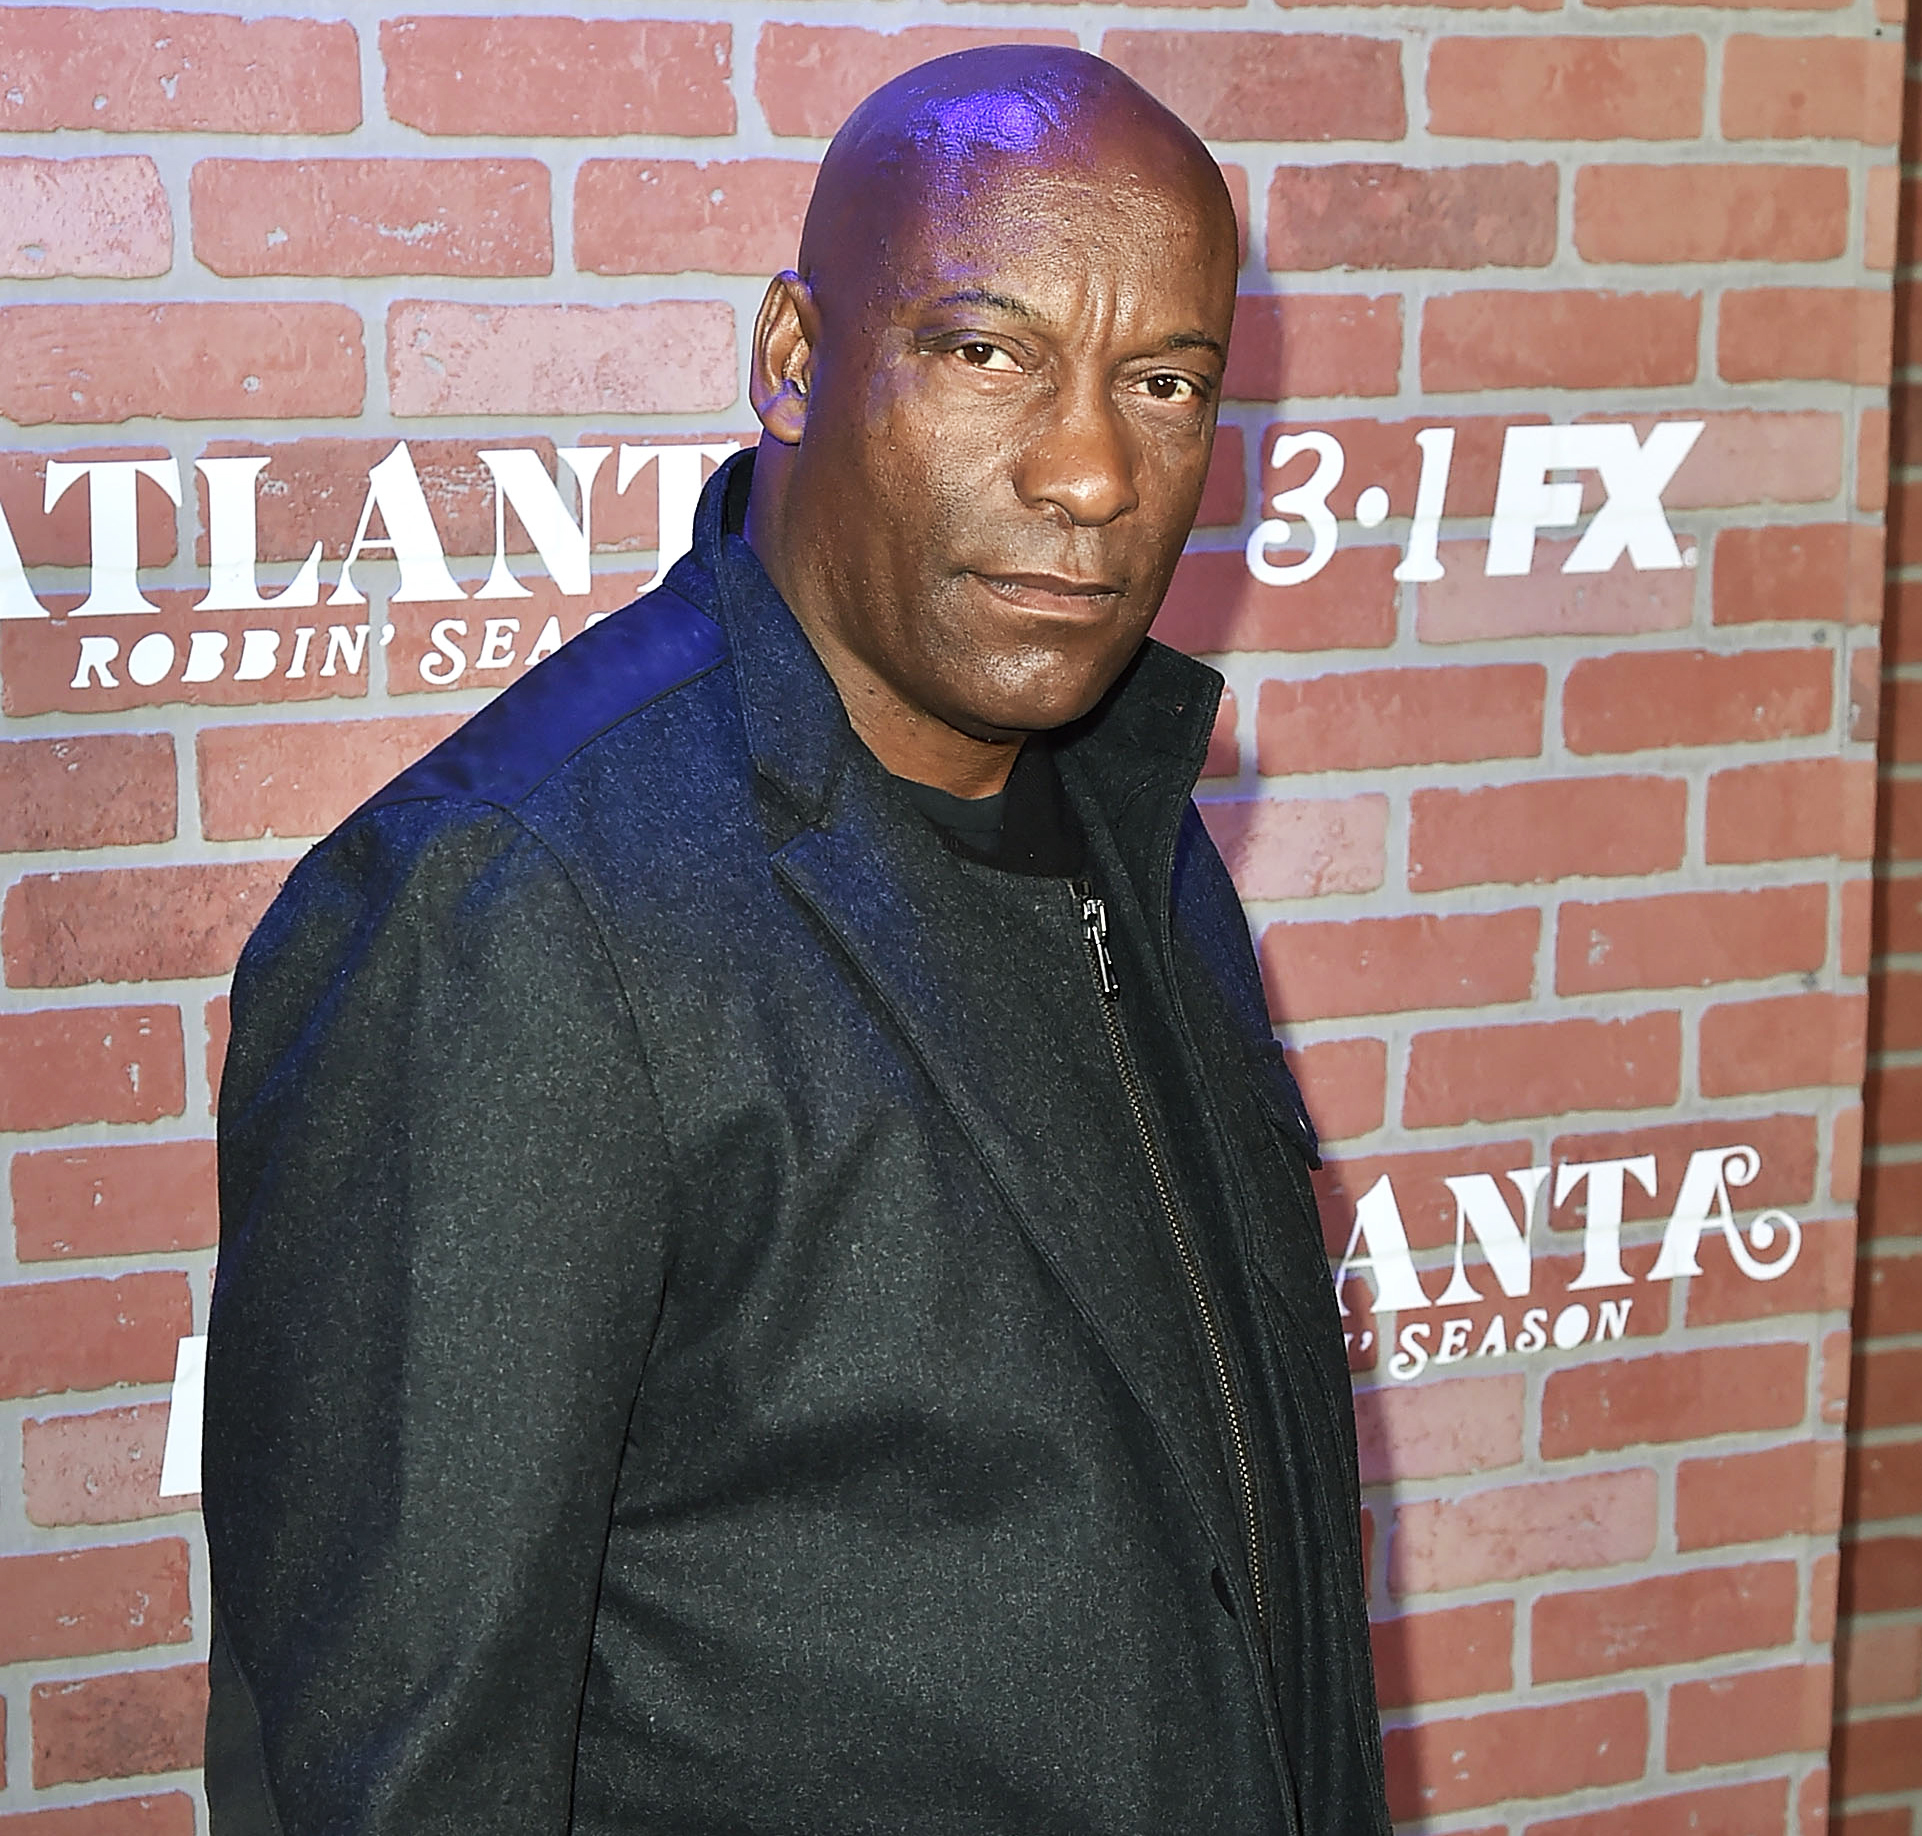 John-Singleton-death-reactions - Mourning the loss of a film pioneer. Celebrities including Samuel L. Jackson and Rose McGowan took to social media to remember director John Singleton after he died at the age of 51 on Monday, April 29.